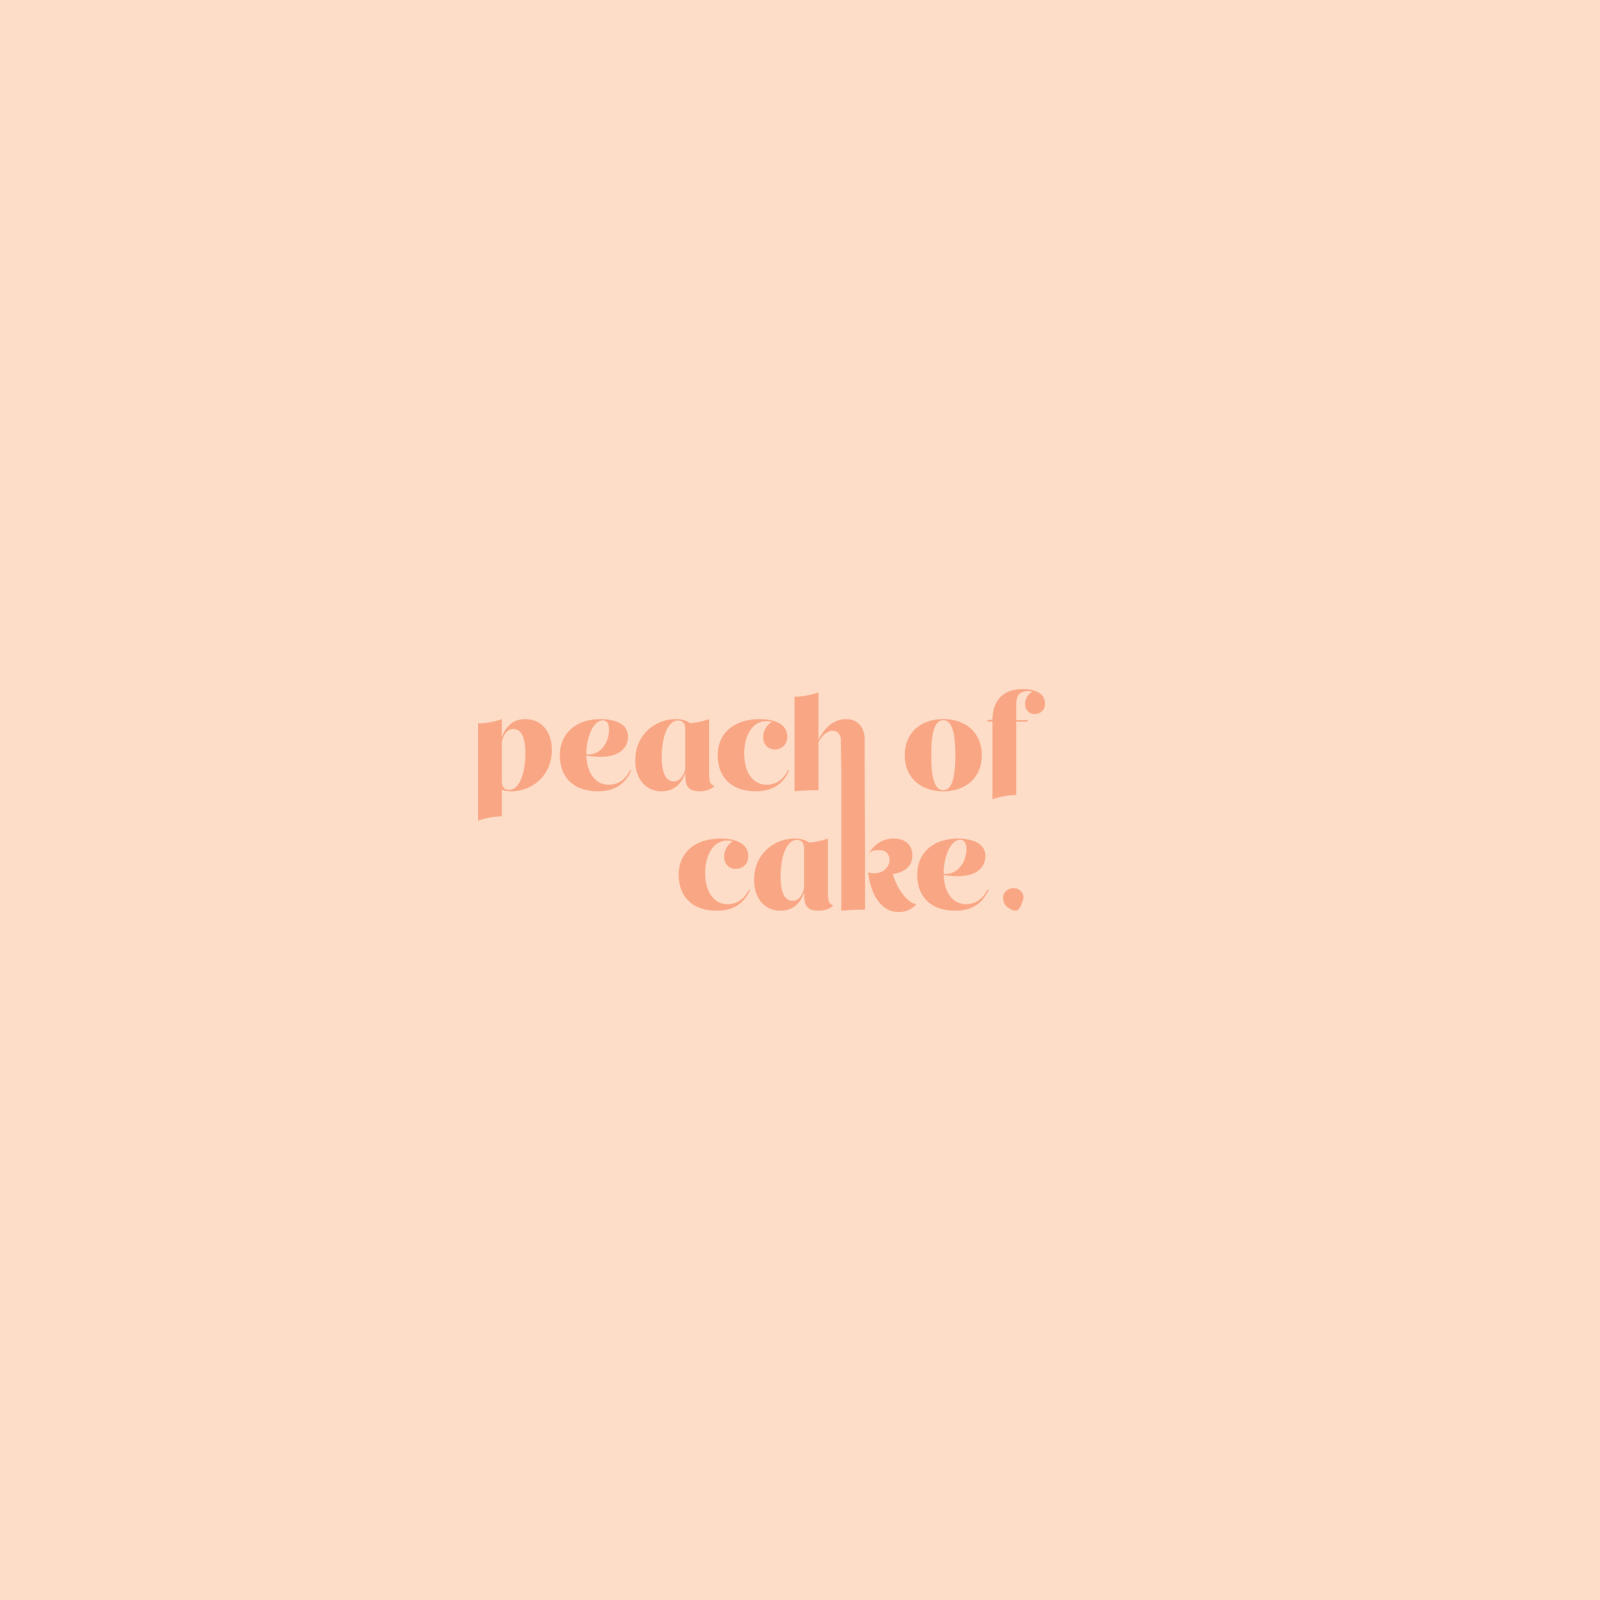 https://melvolkman.com/peach-of-cake/